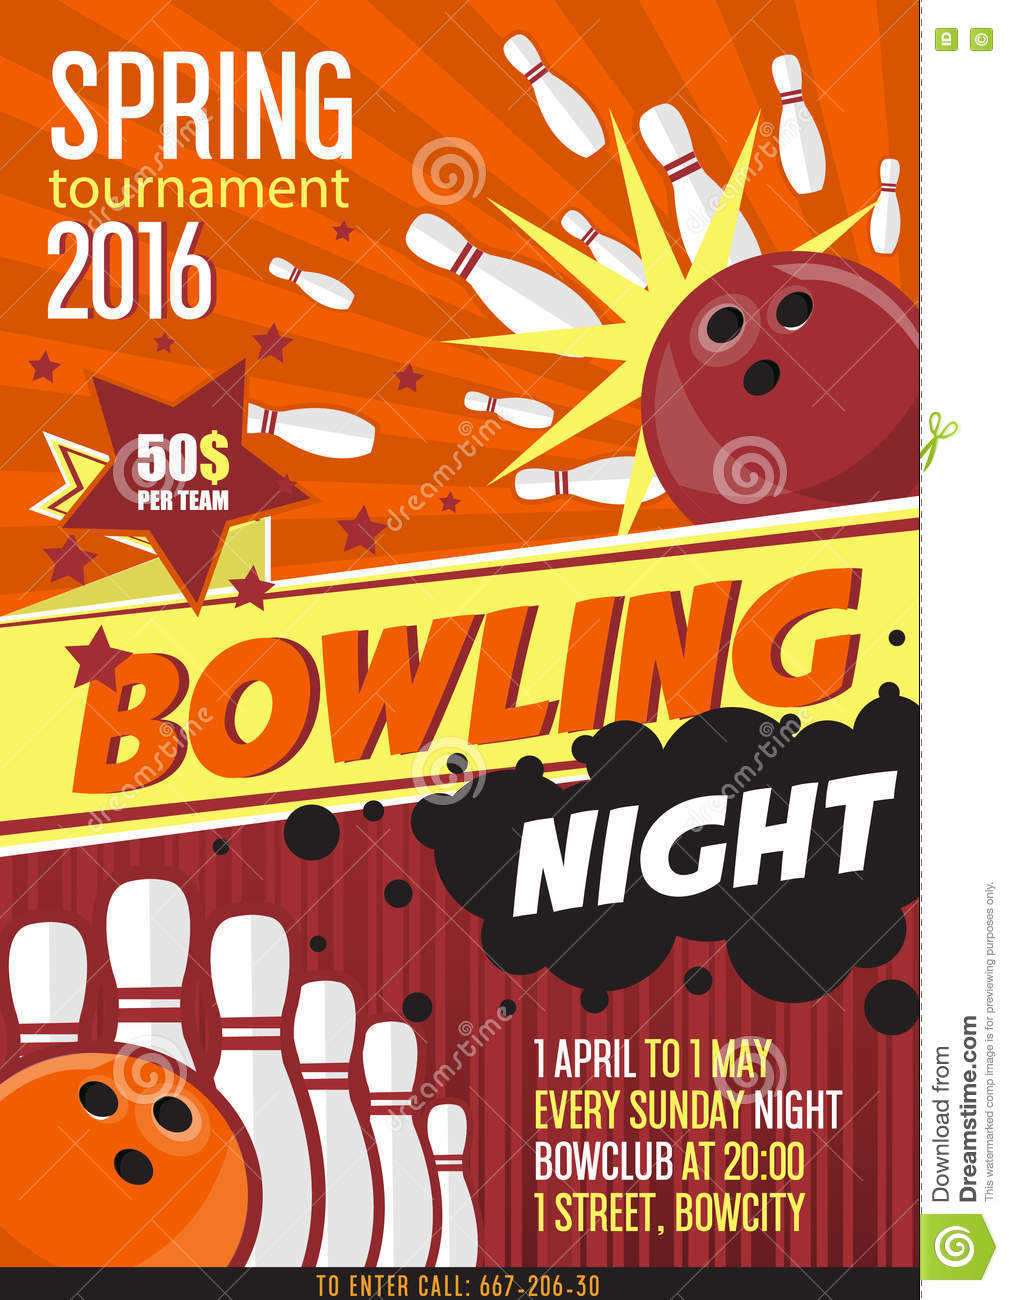 Bowling Tournament Poster Template Design With Bowling